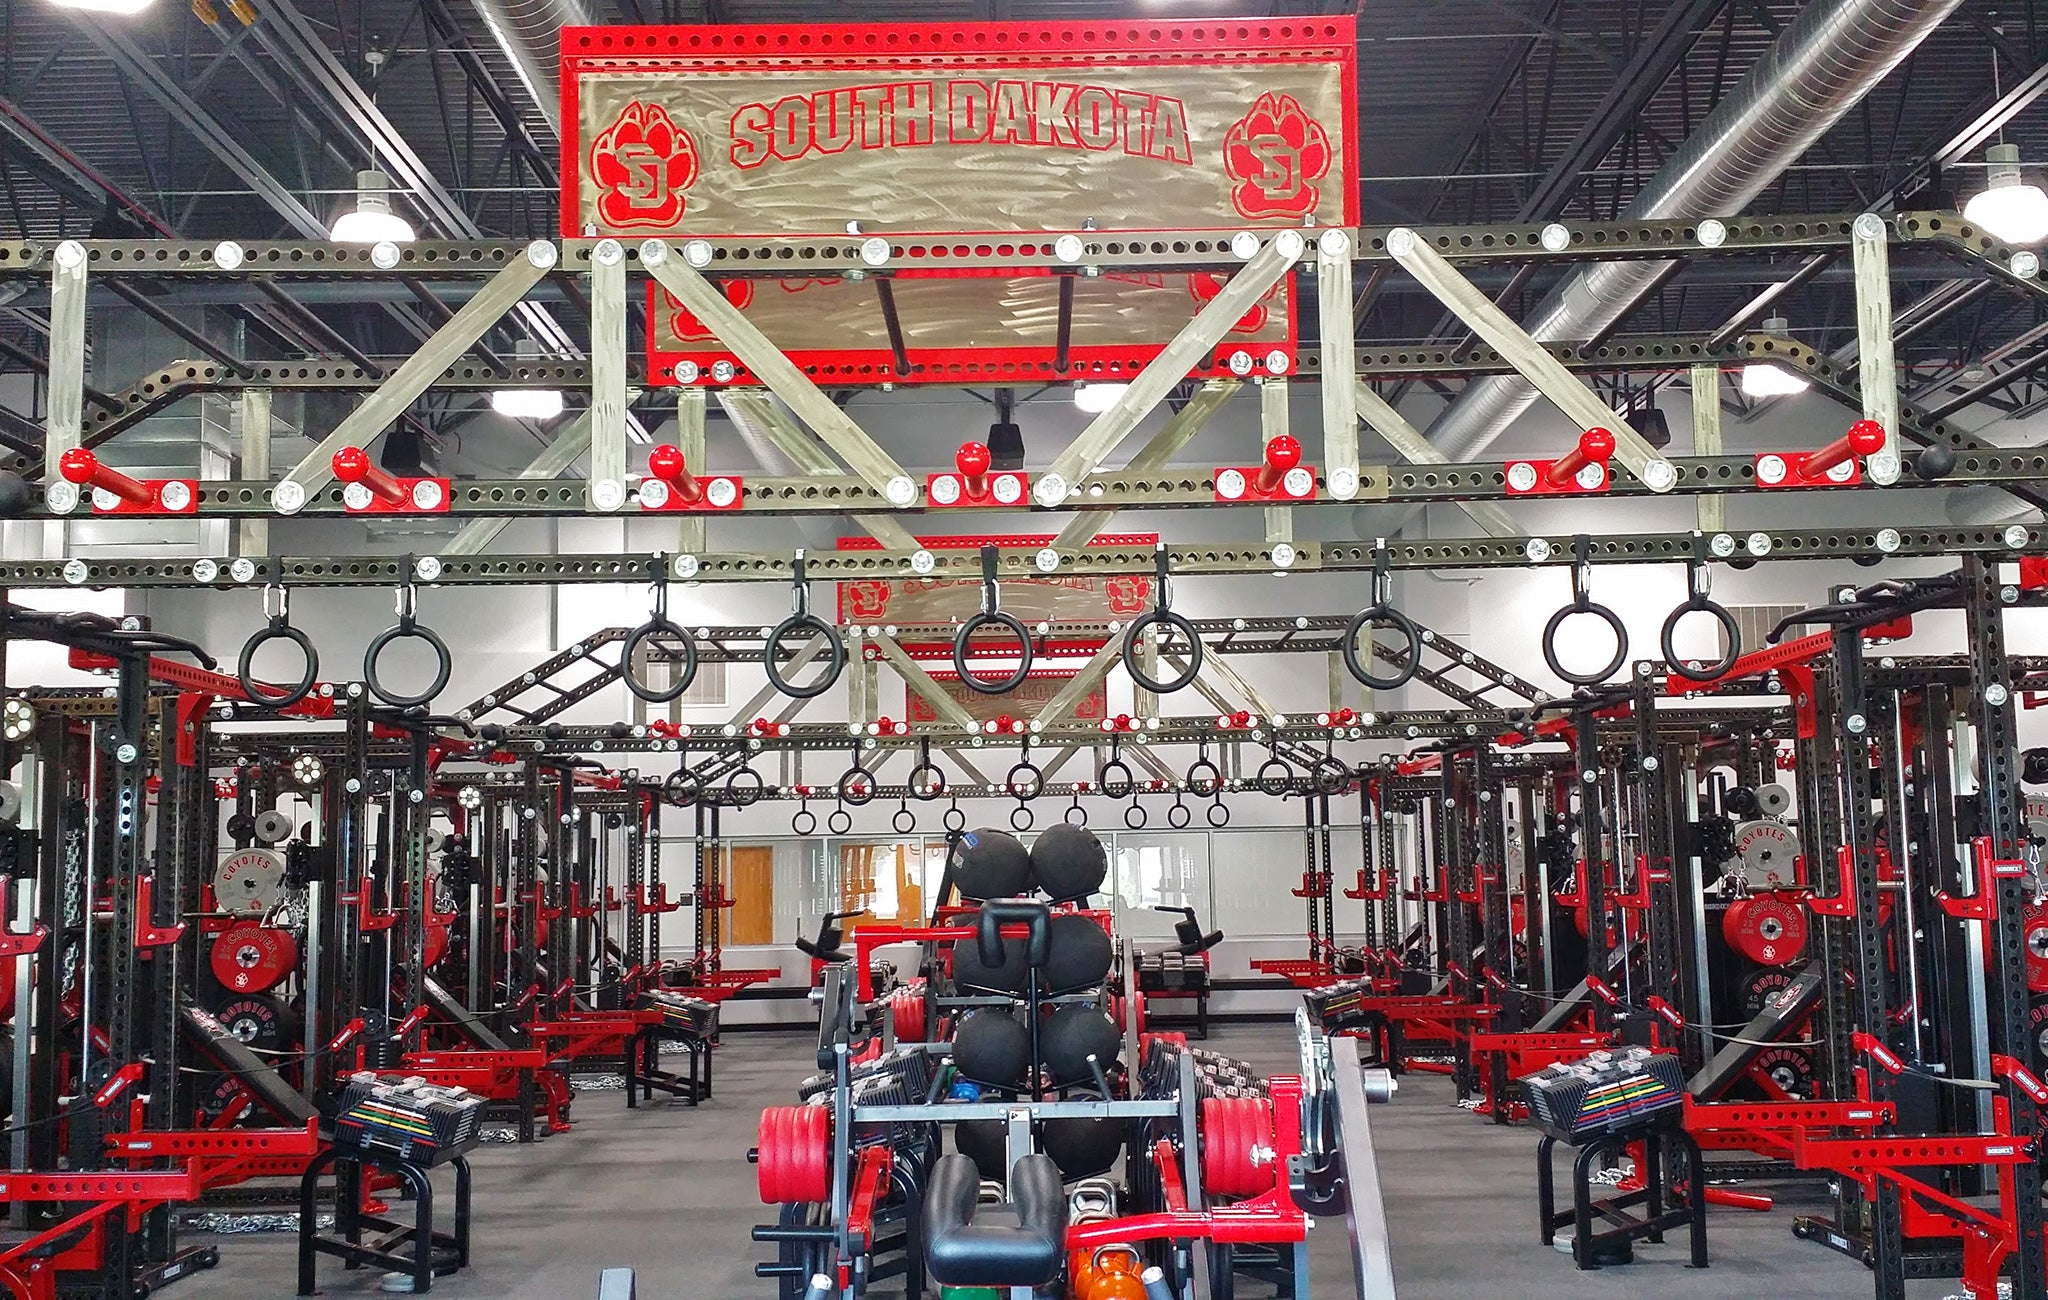 University of South Dakota Weight Room